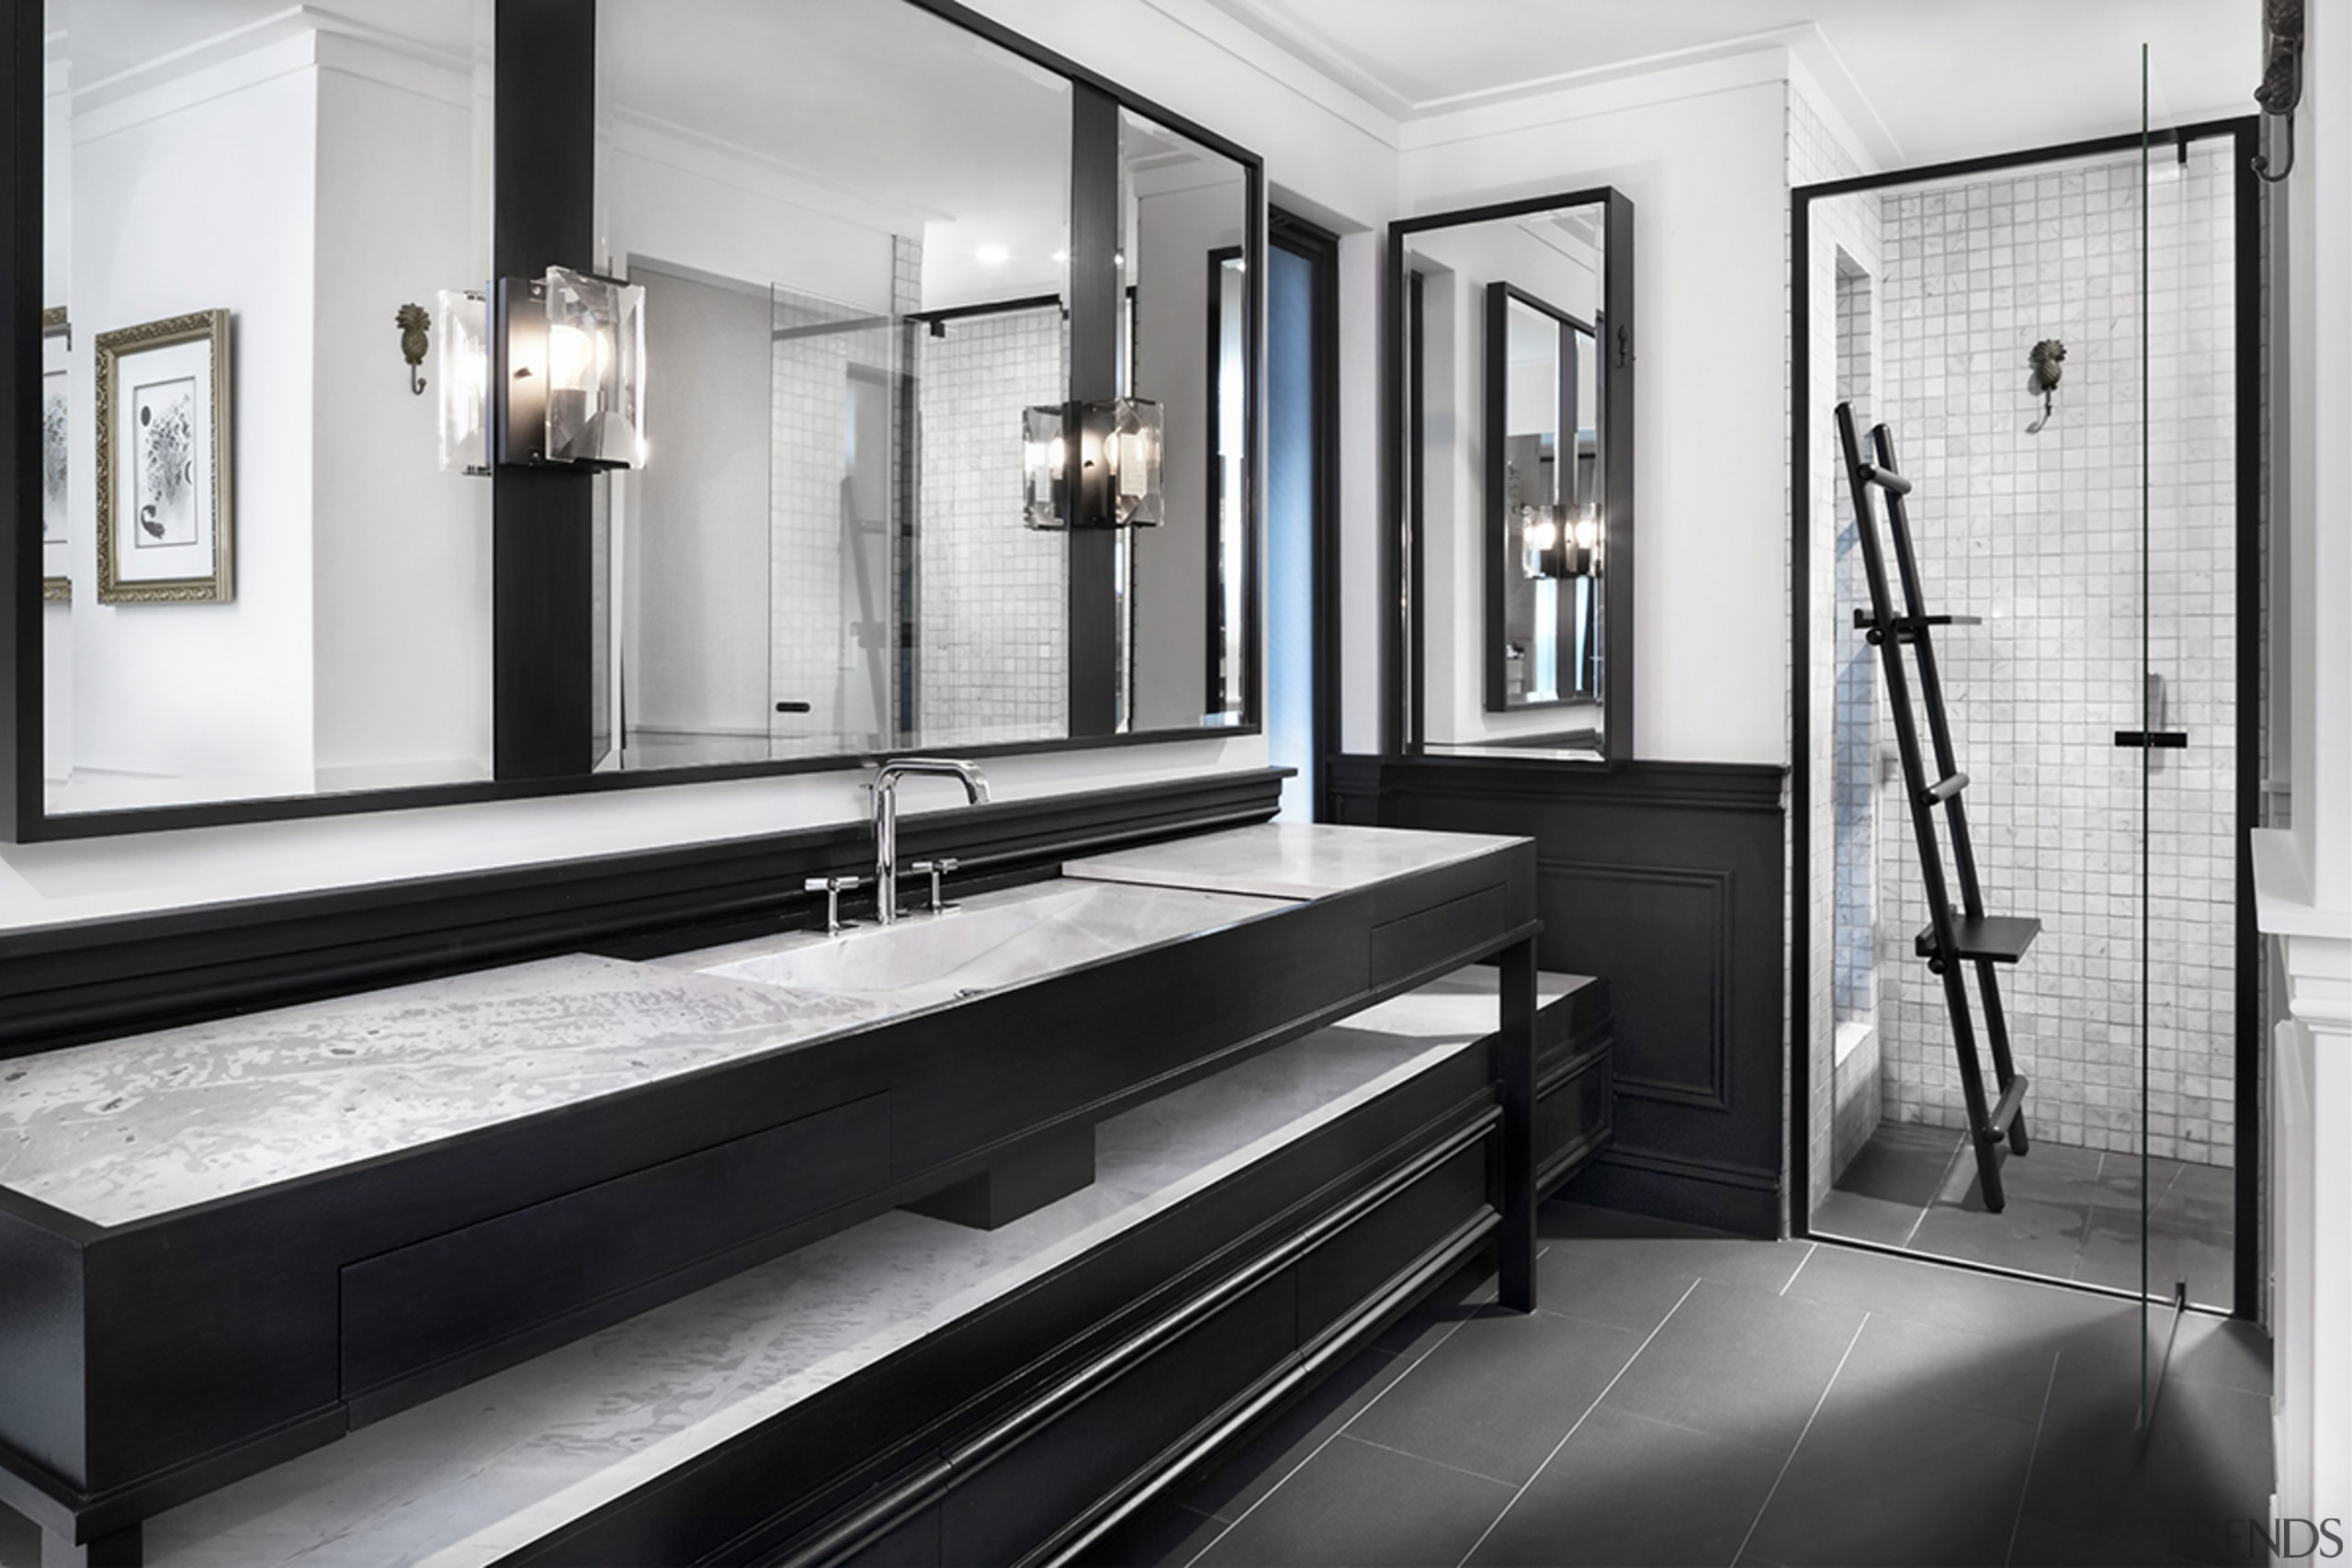 Read the full story architecture, bathroom, black-and-white, building, ceiling, floor, furniture, house, interior design, property, room, white, black